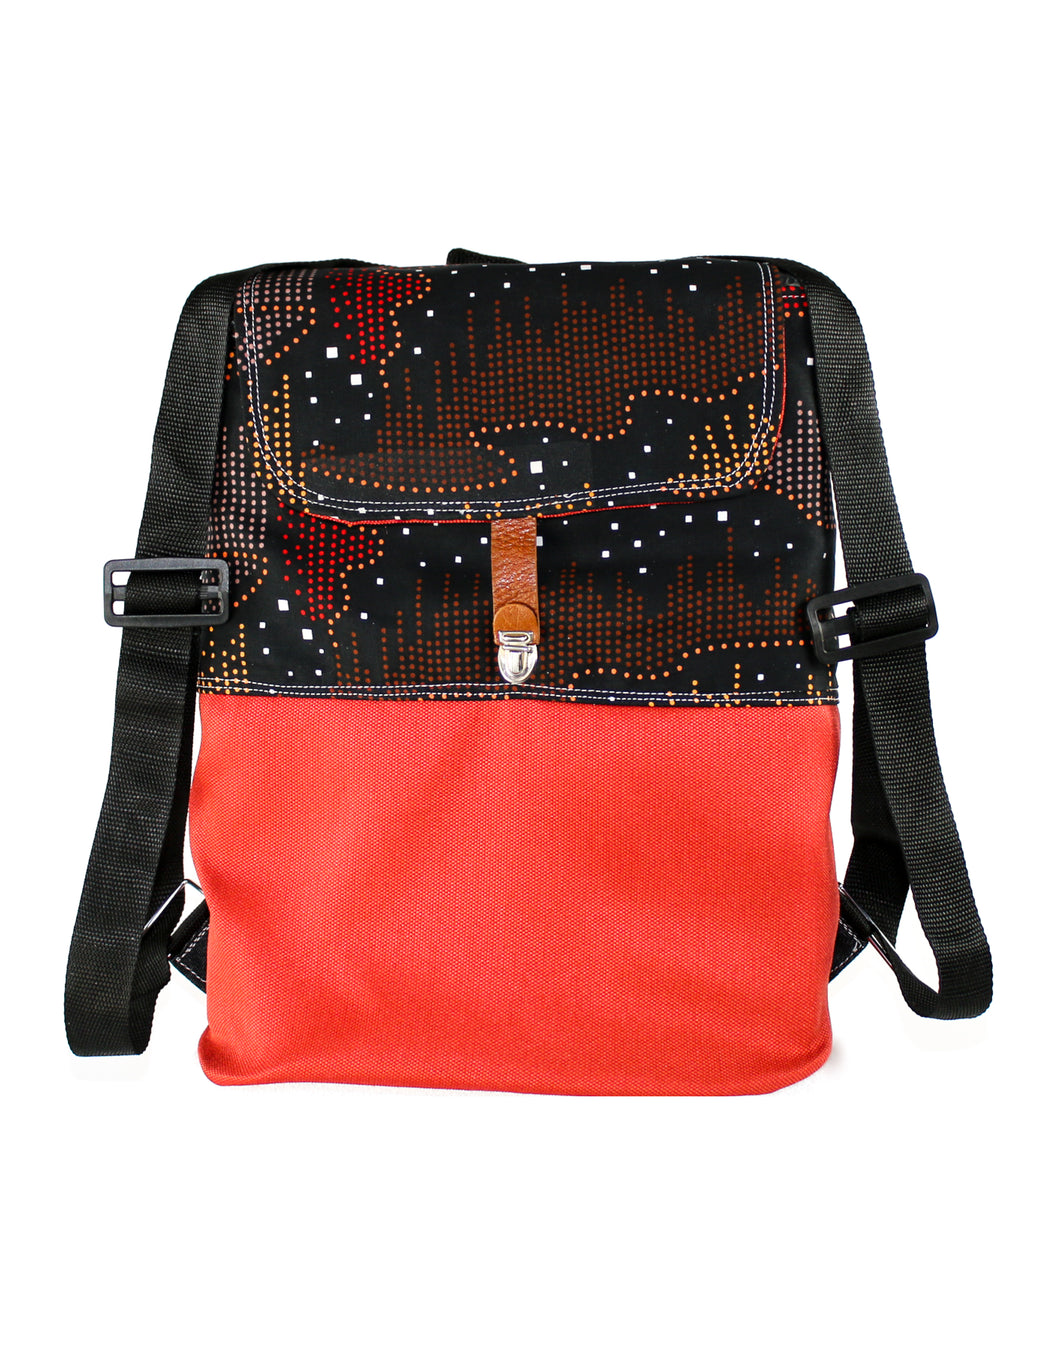 Multi-colored dots on Black with Orange Red Base